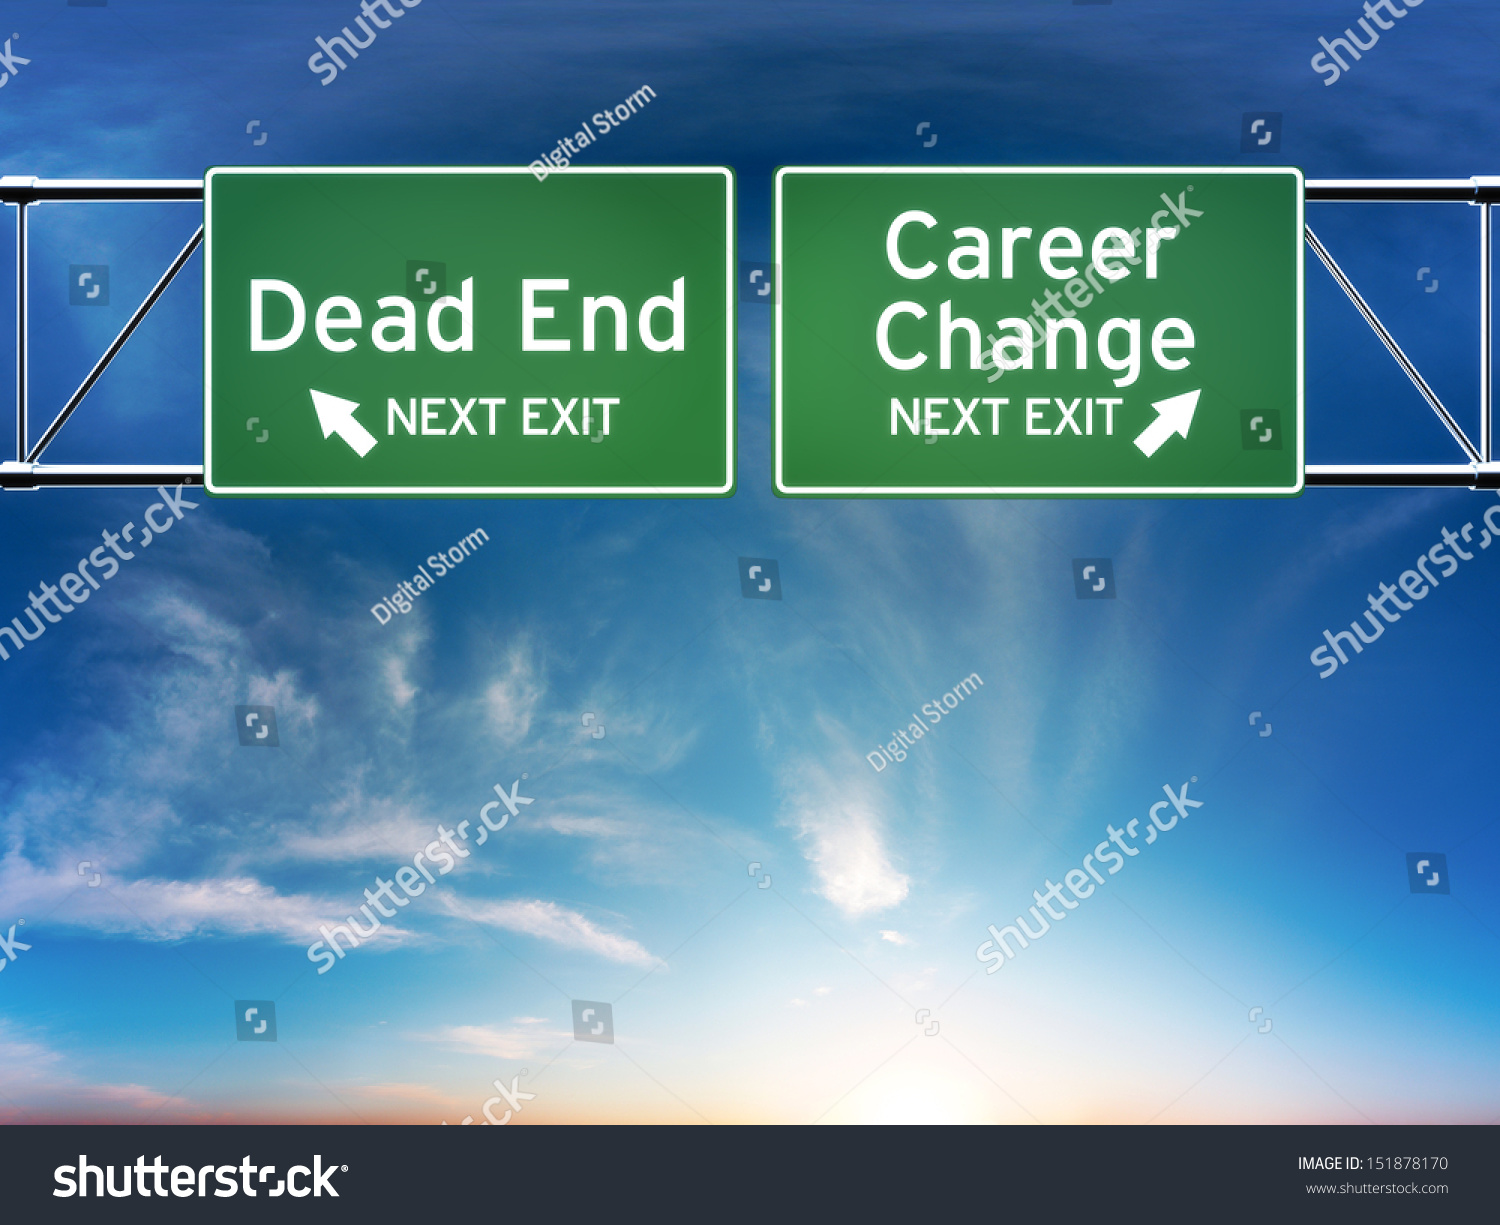 career change dead end job concept stock illustration 151878170 career change or dead end job concept road signs showing your choice in career path